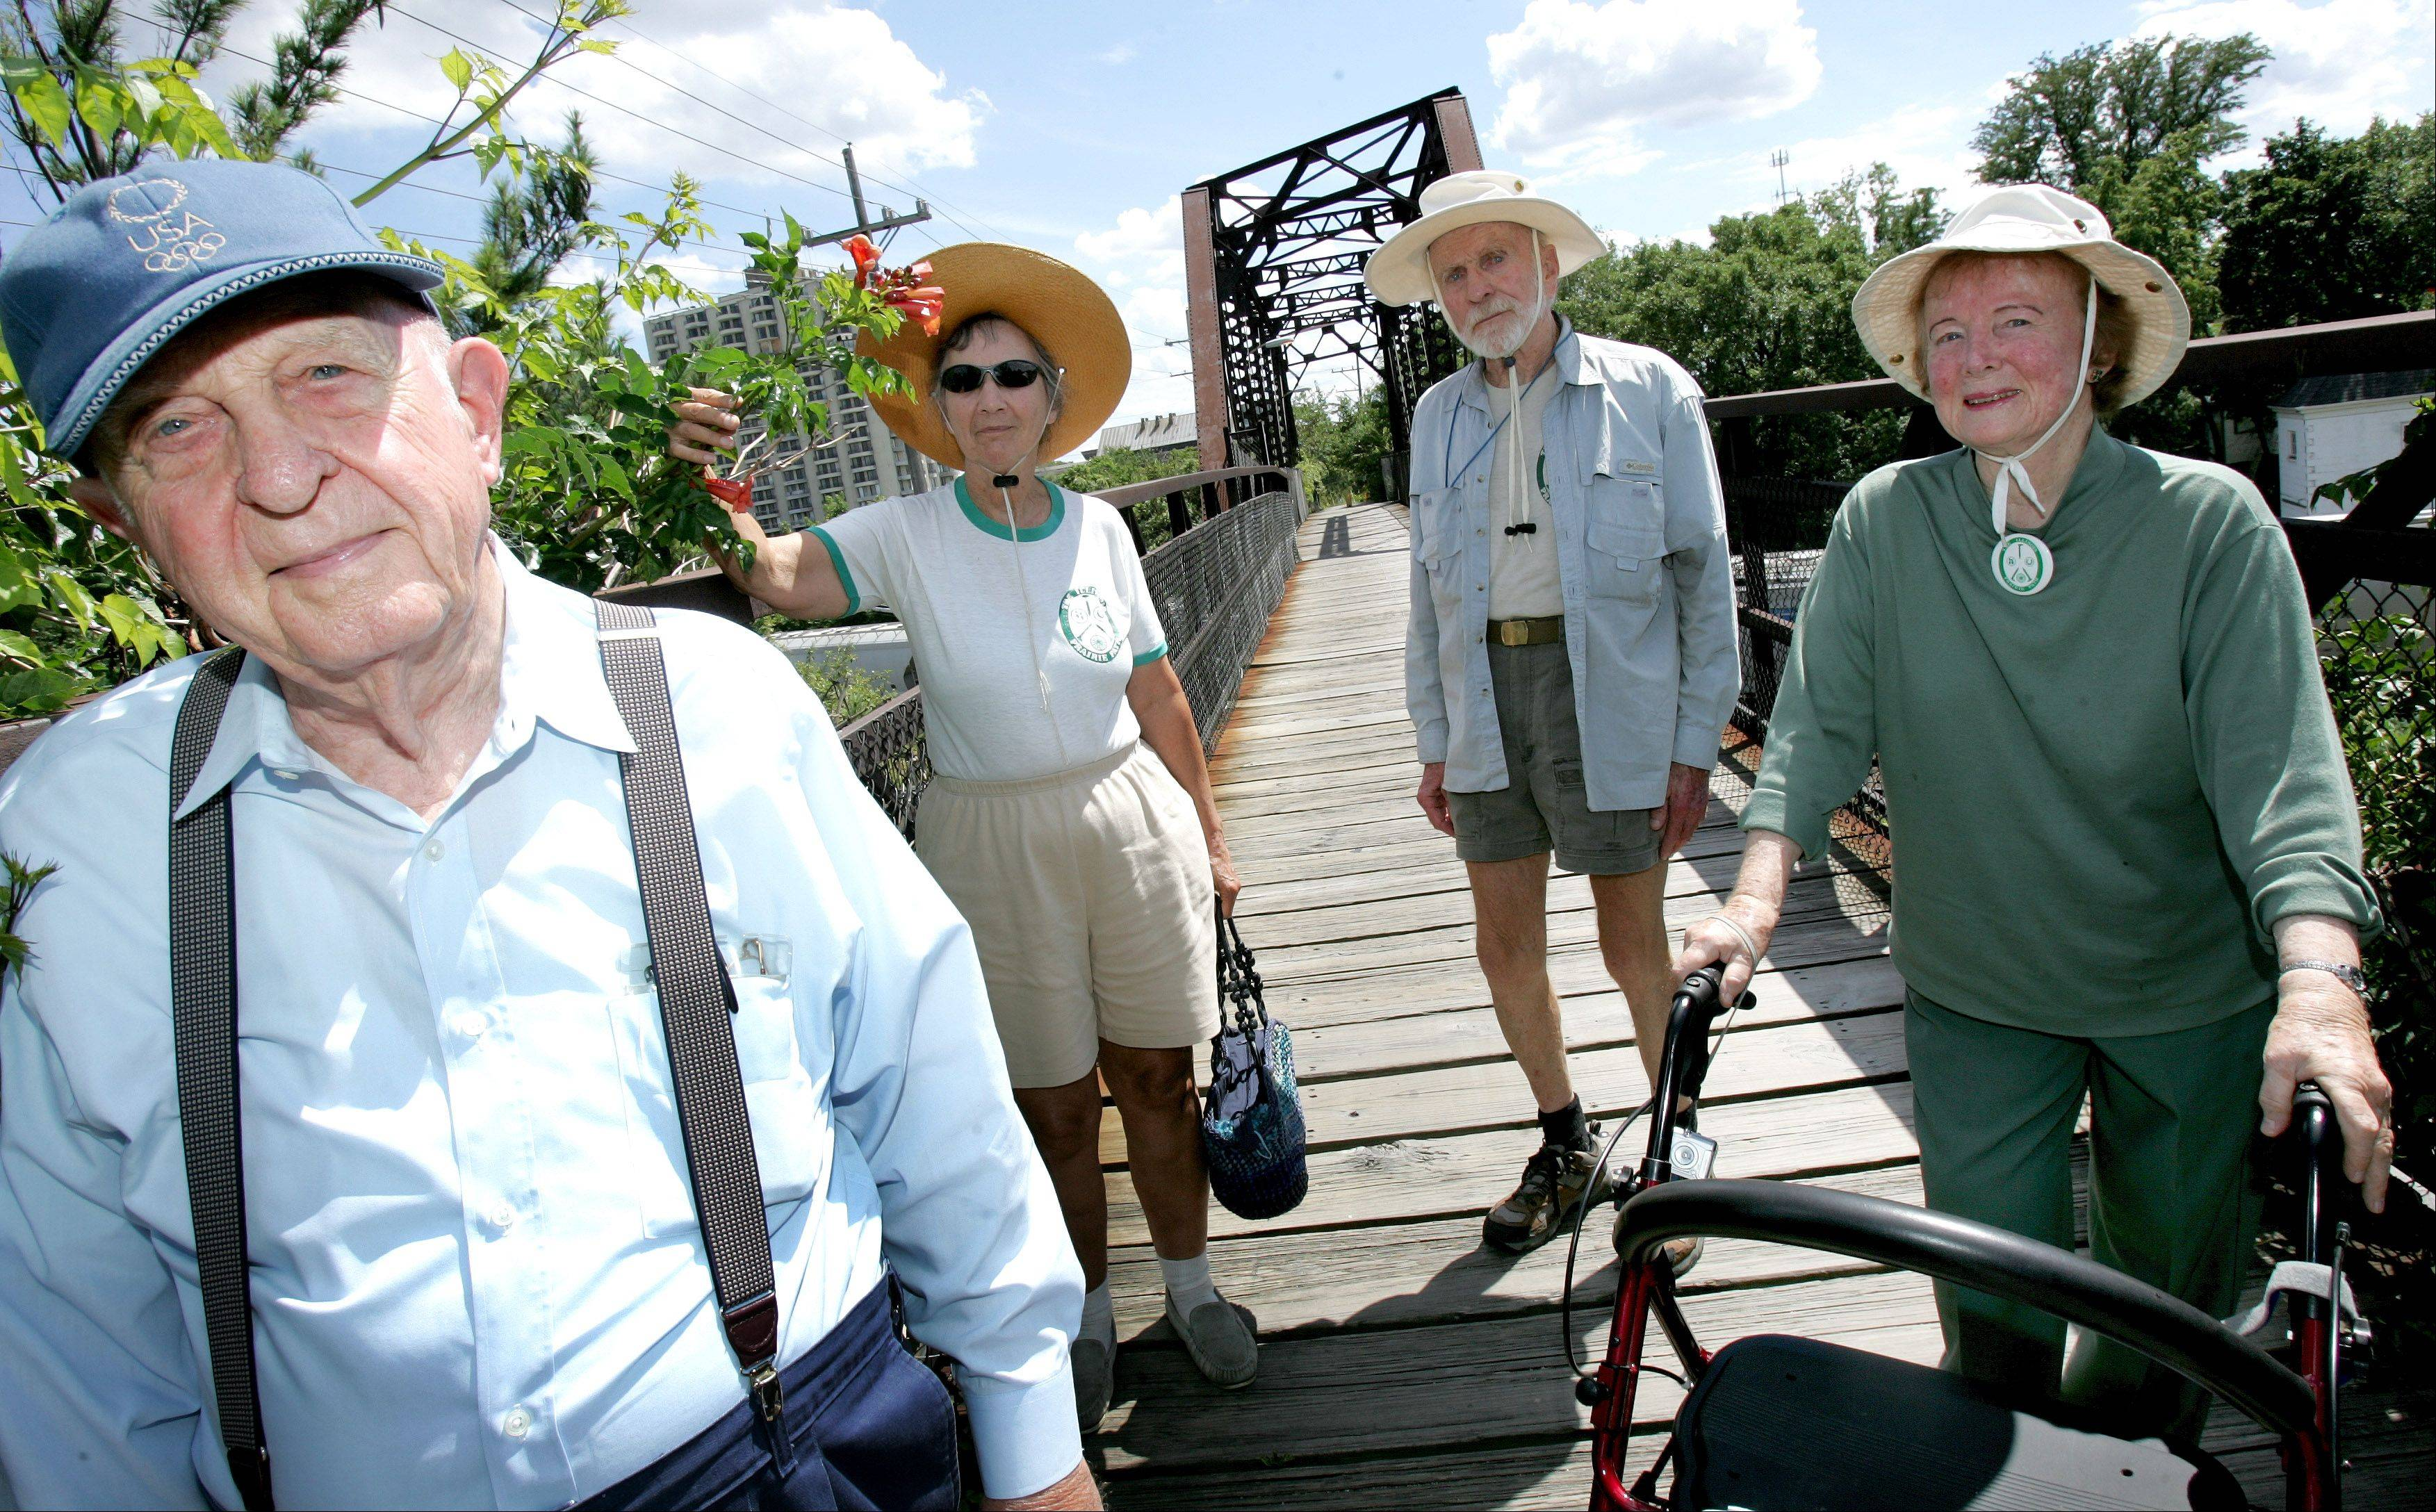 Jean Mooring, right, was a longtime advocate of the Illinois Prairie Path. She is pictured in 2008 with her husband Paul, left, and fellow volunteers Nancy and Dick Wilson at Volunteer Bridge in Wheaton.